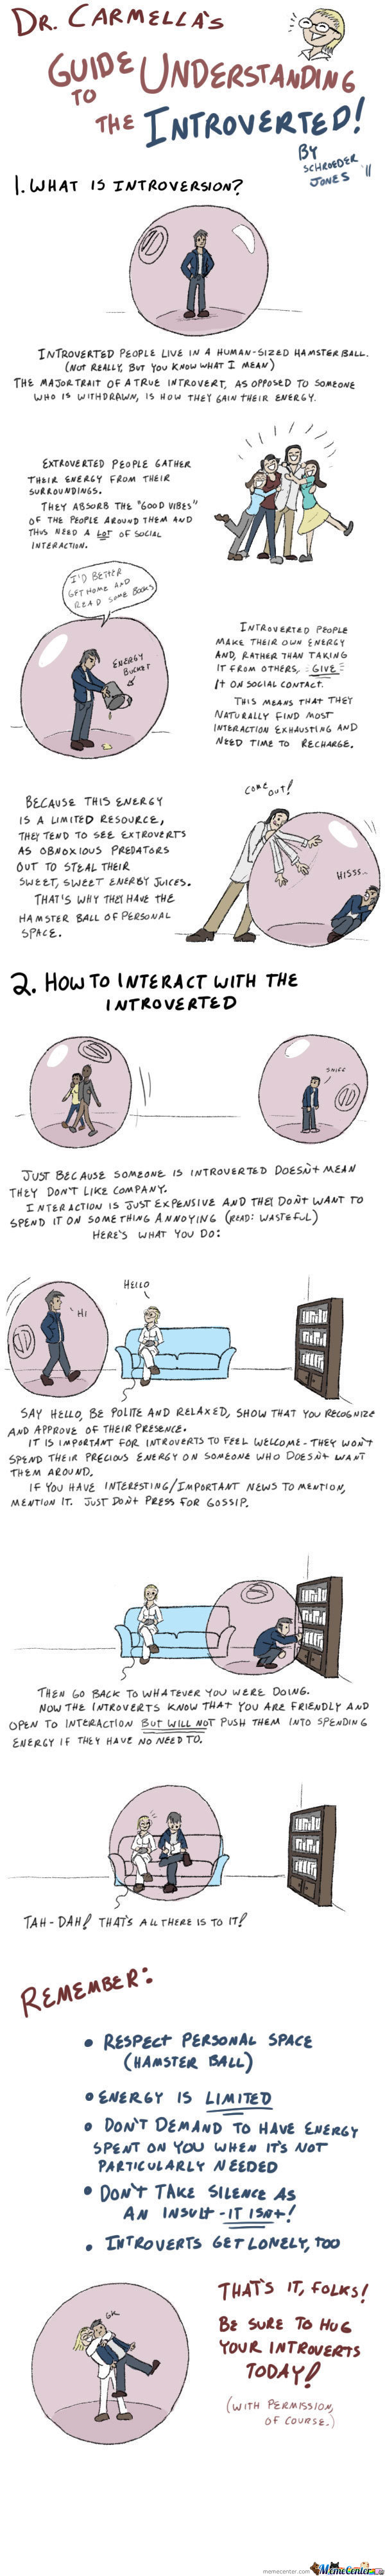 A Memecenter's Guide To The Introverted (Disclaimer)